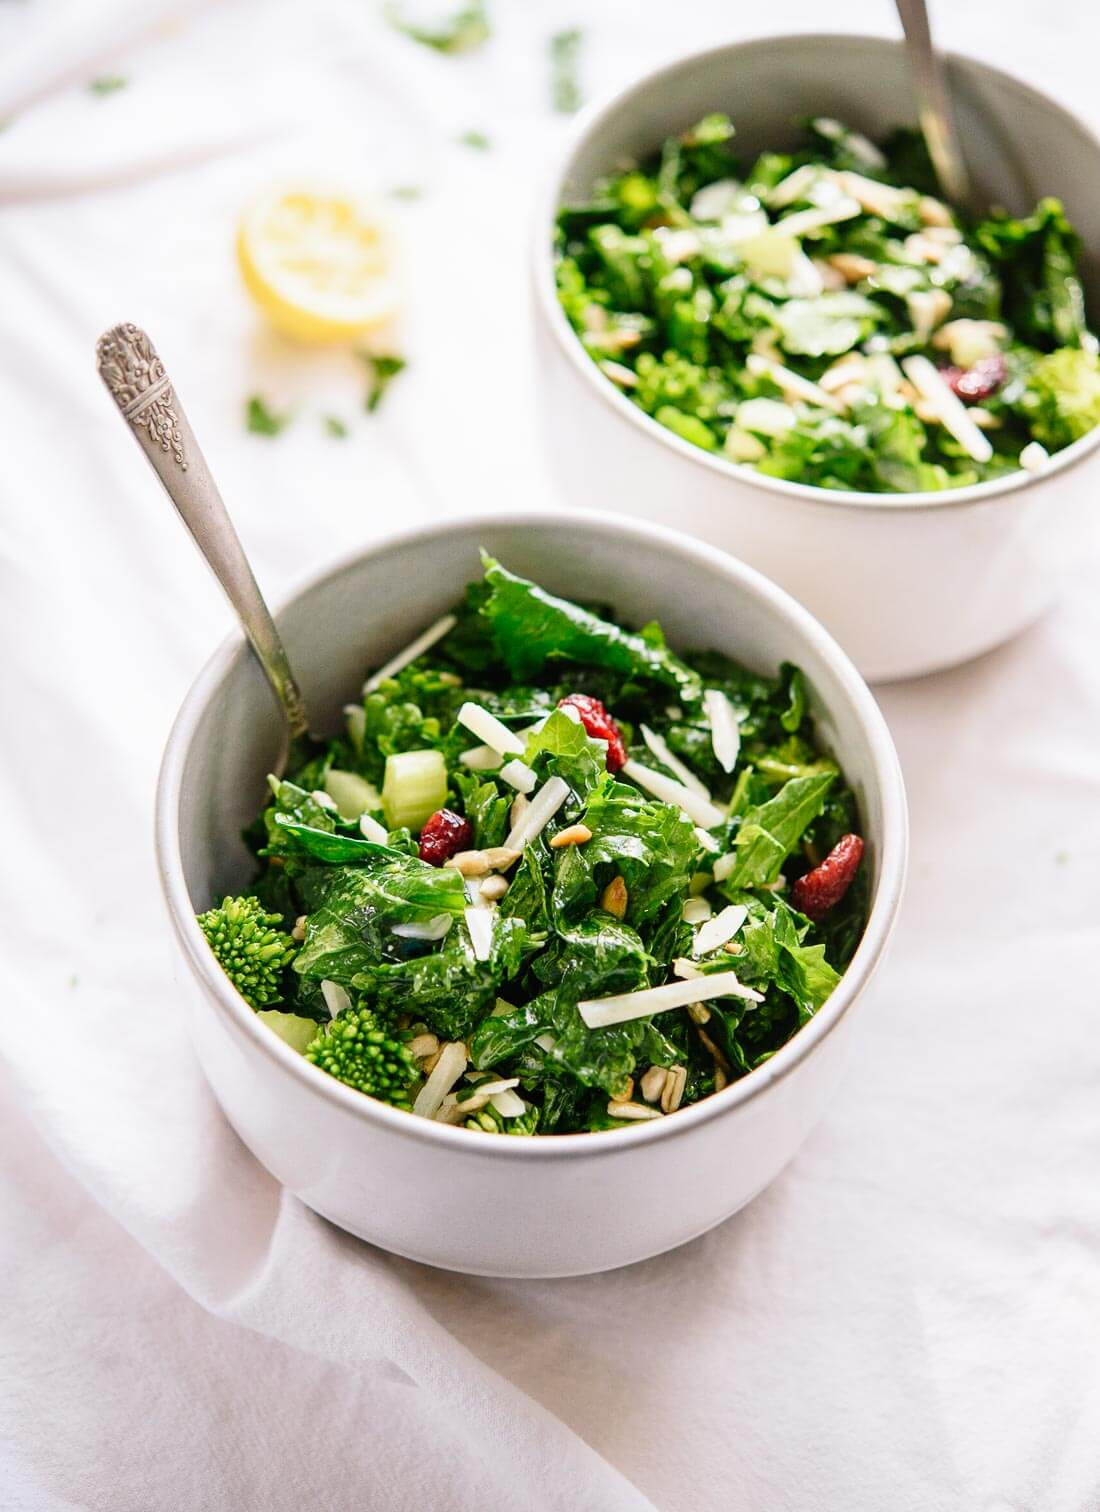 This unexpected broccoli rabe salad is so delicious! cookieandkate.com